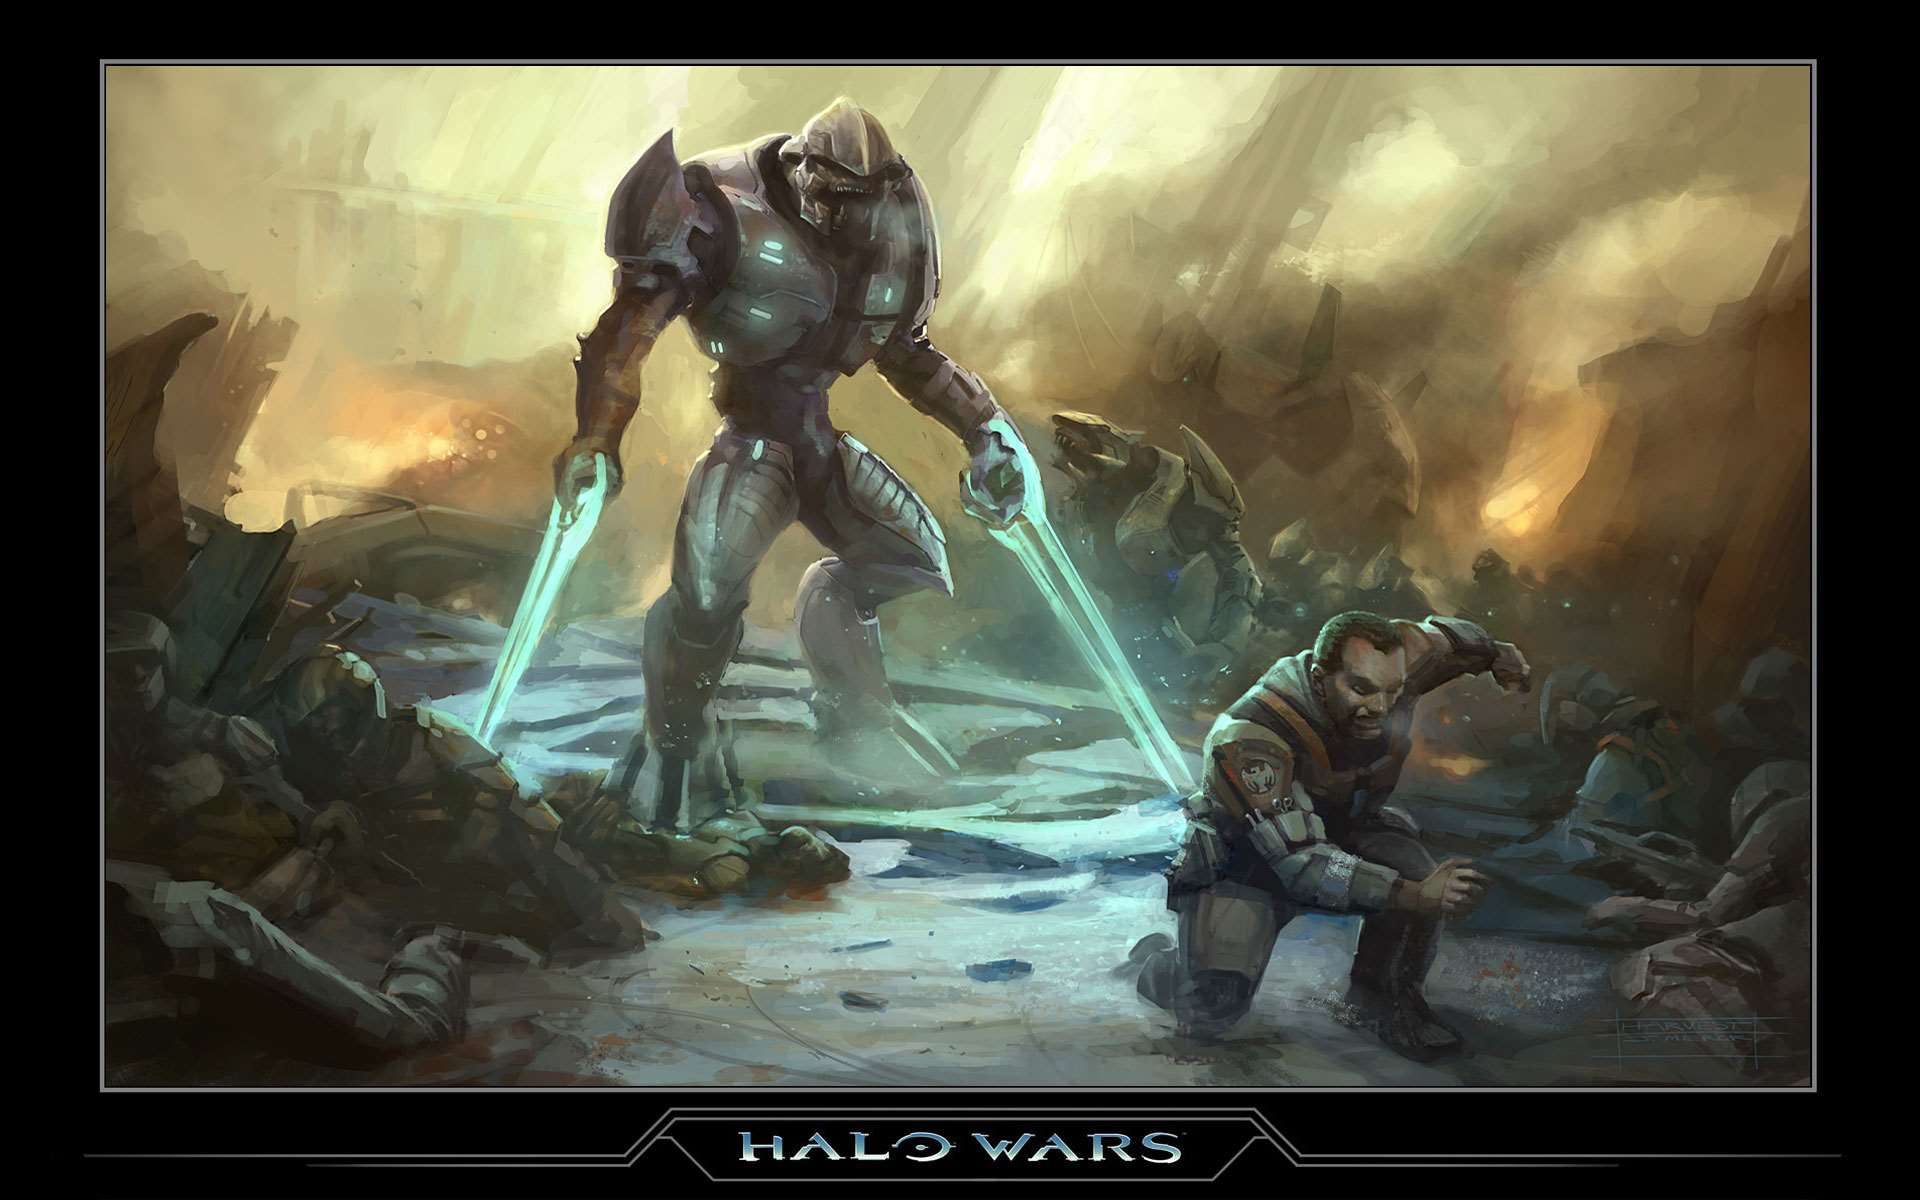 Official Halo Wars Wallpaper Concept 2